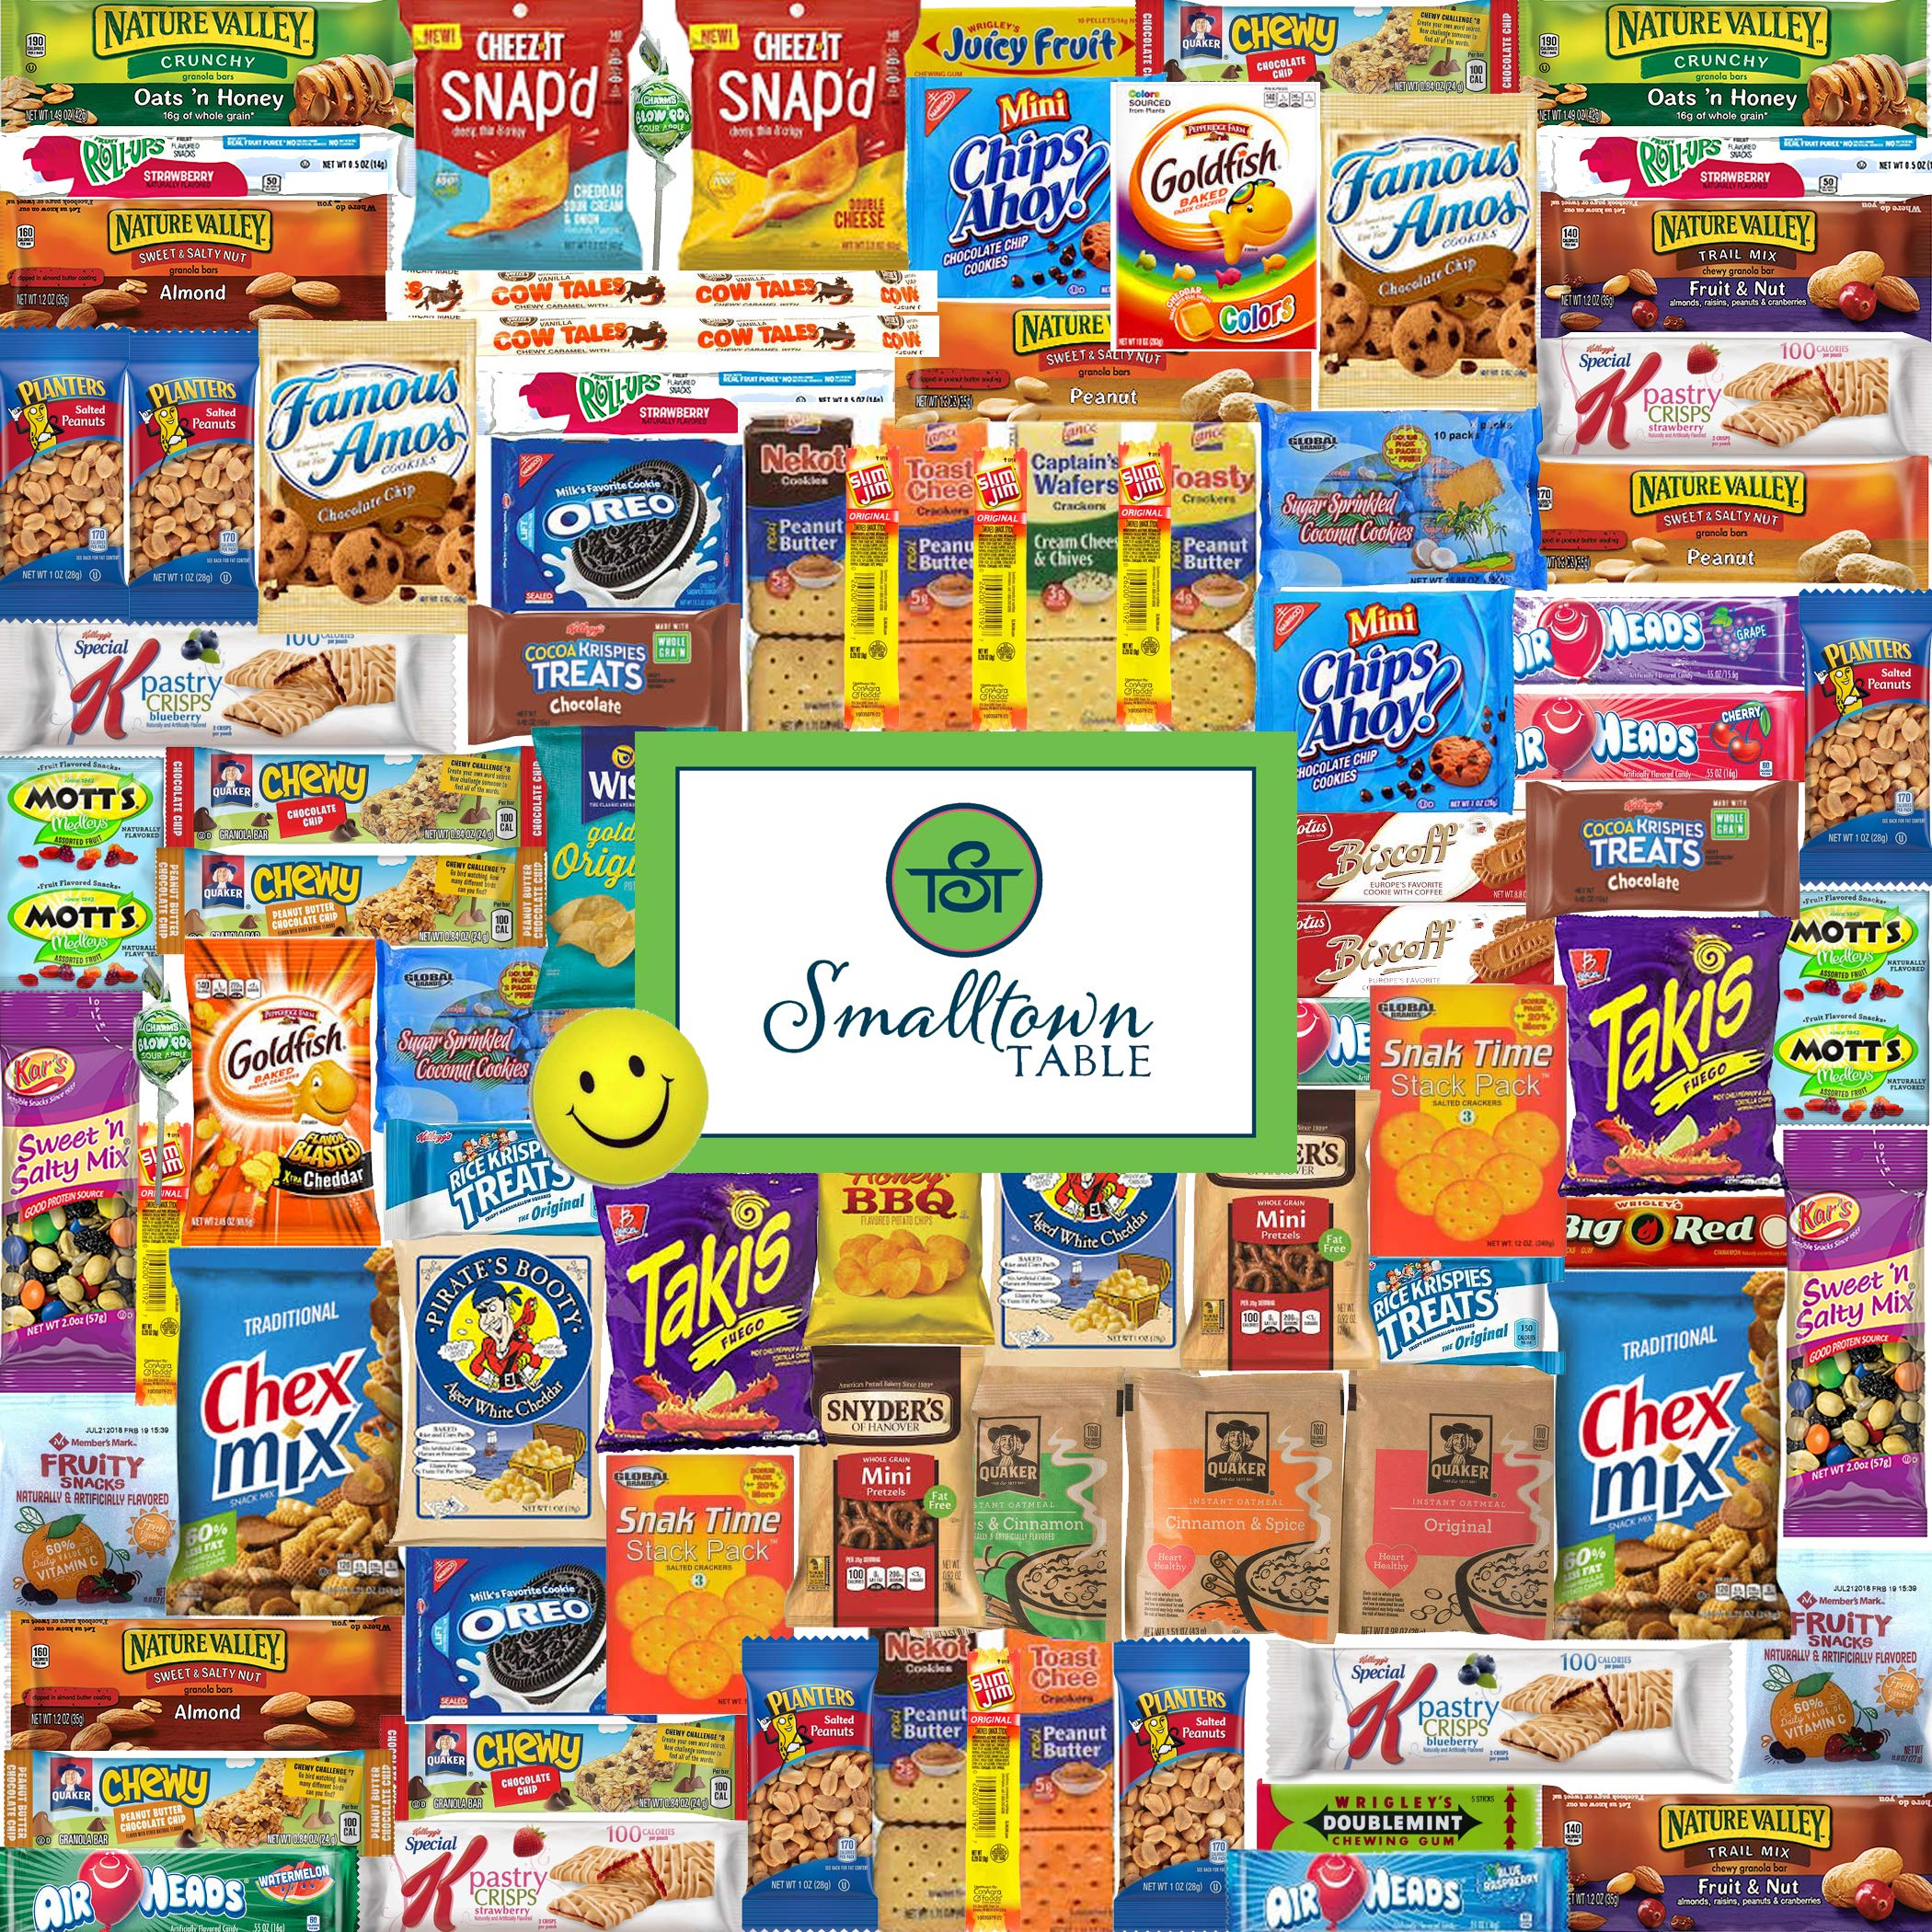 Premium Snacks Variety Pack Care Package - Huge 100 Count - the Perfect Gift Box for Office, College Students, Camp, Military - Individually Wrapped Chips, Cookies, Candy, More